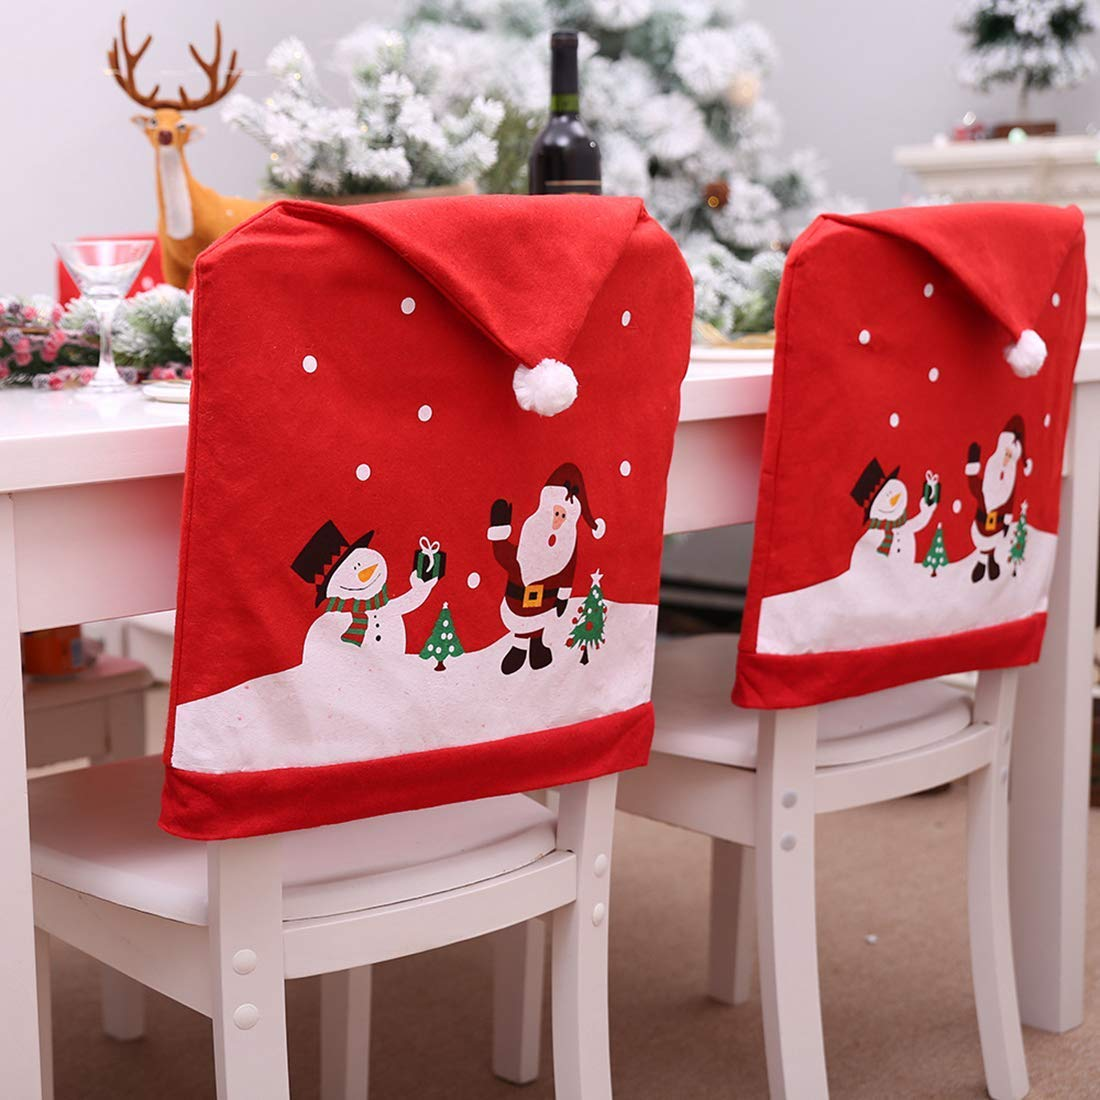 Tenrany Home Red Christmas Chair Back Covers Decorations, Set of 4